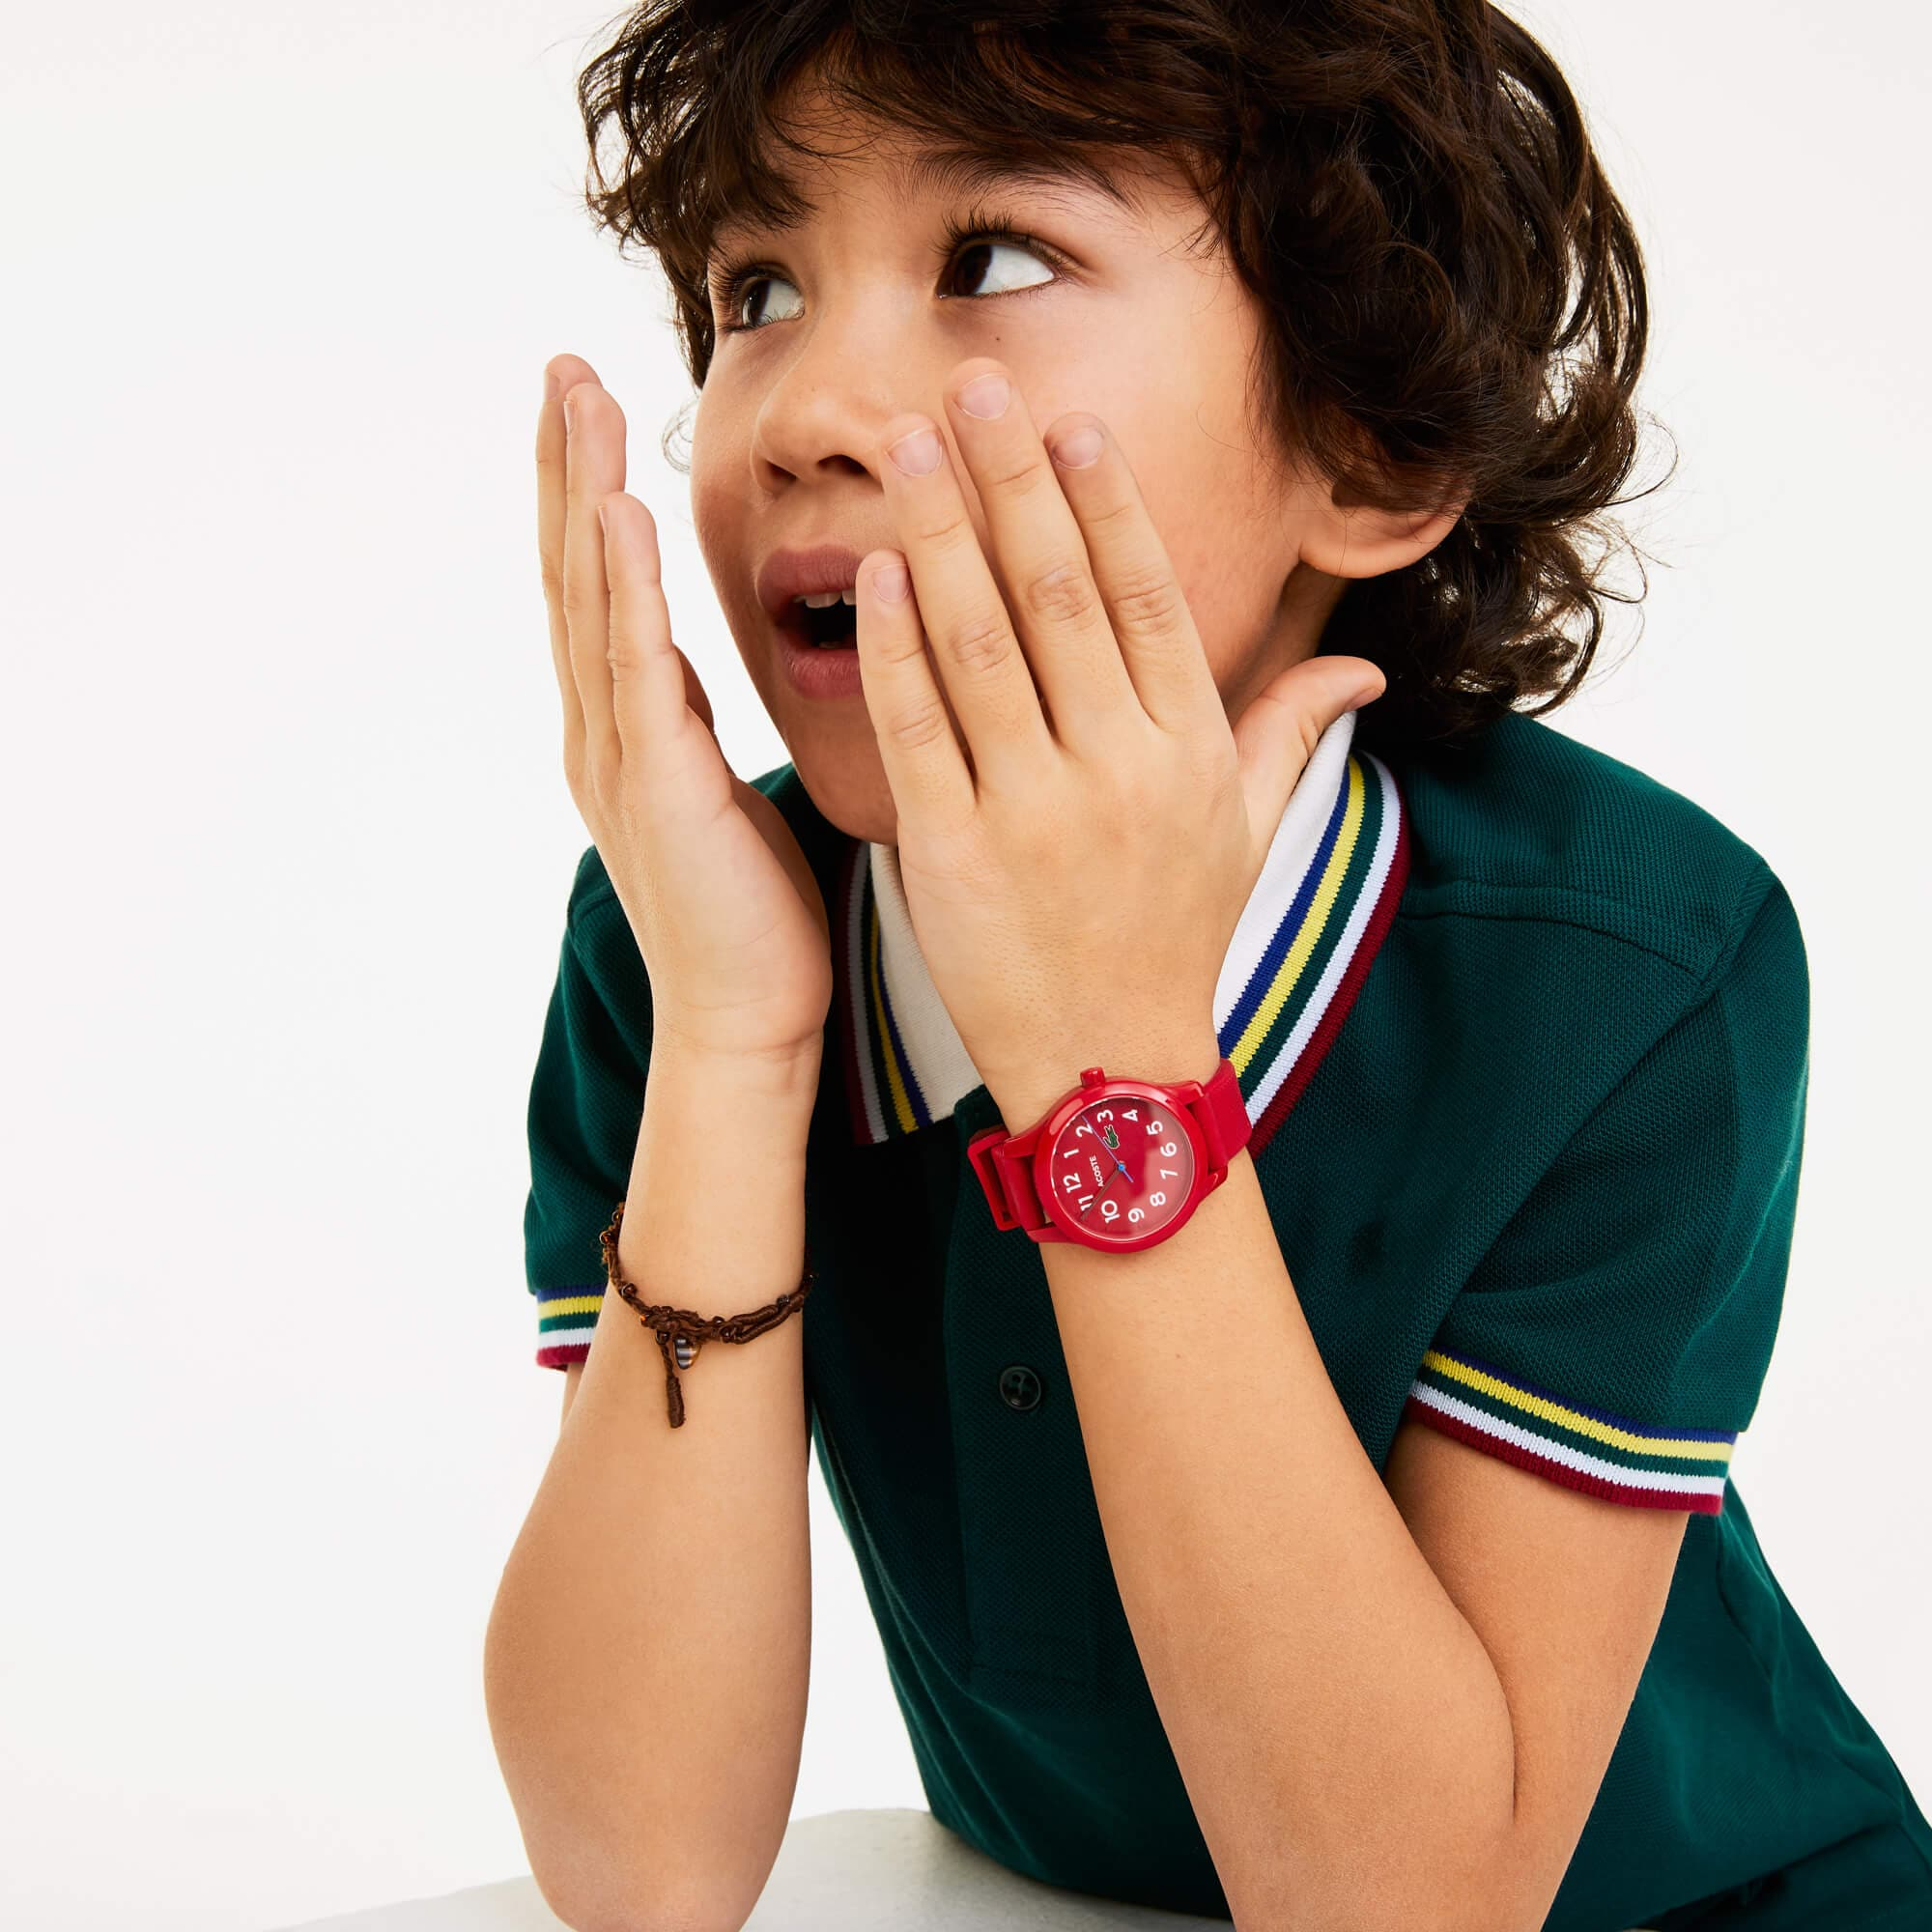 Kid's Lacoste 12.12 Watch with Red Silicone Strap